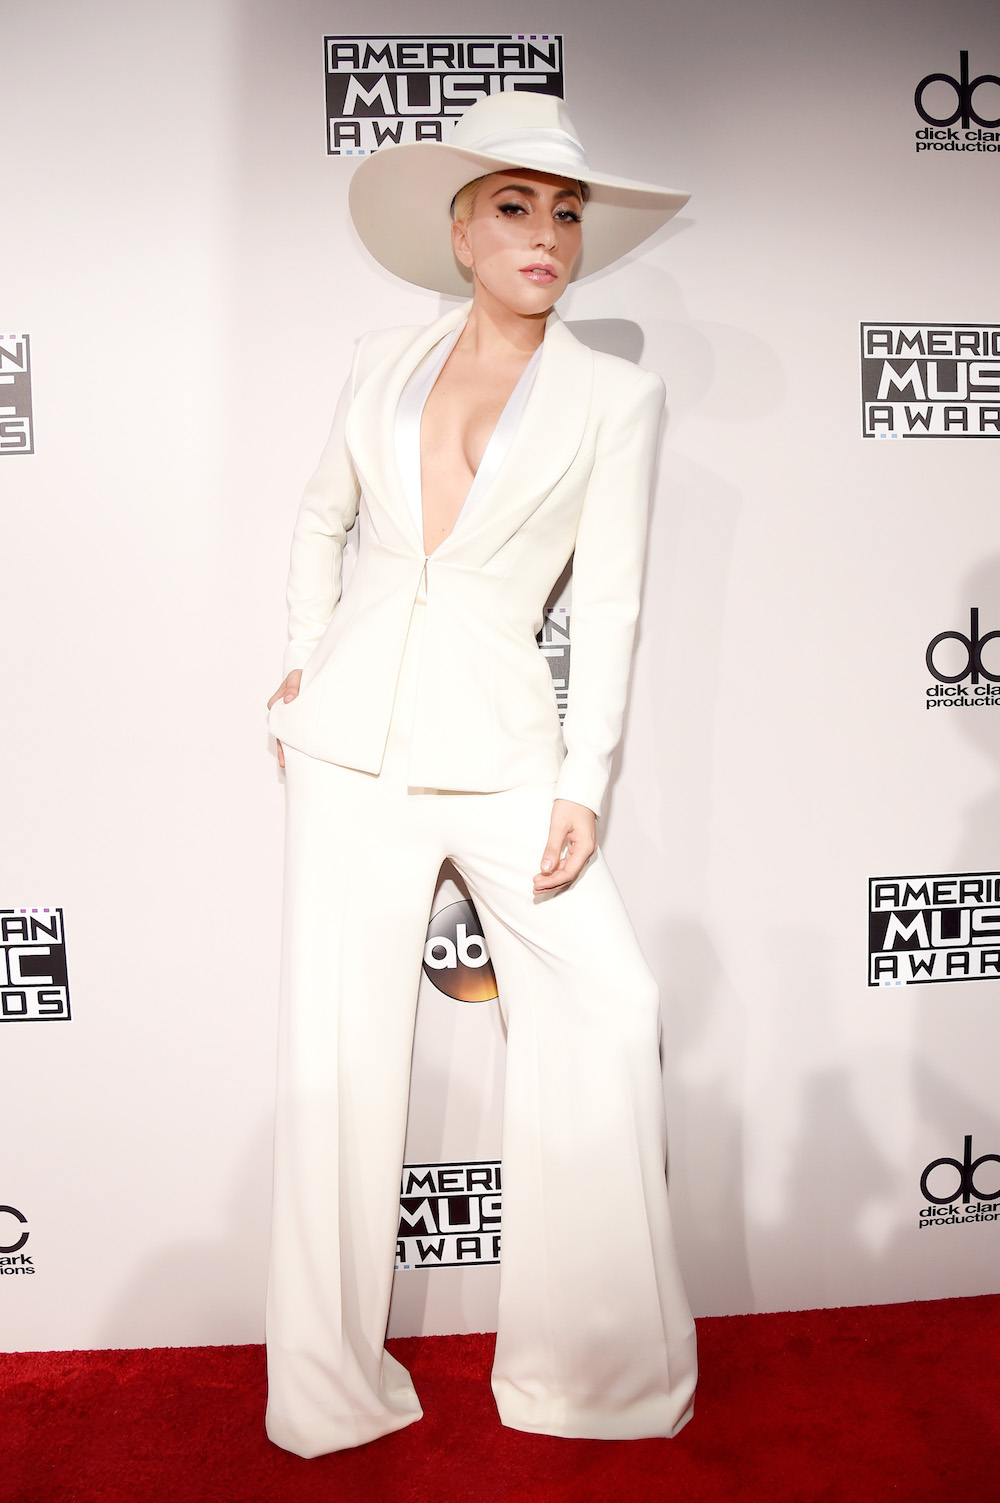 LOS ANGELES, CA - NOVEMBER 20:  Singer Lady Gaga attends the 2016 American Music Awards at Microsoft Theater on November 20, 2016 in Los Angeles, California.  (Photo by Kevin Mazur/AMA2016/WireImage)